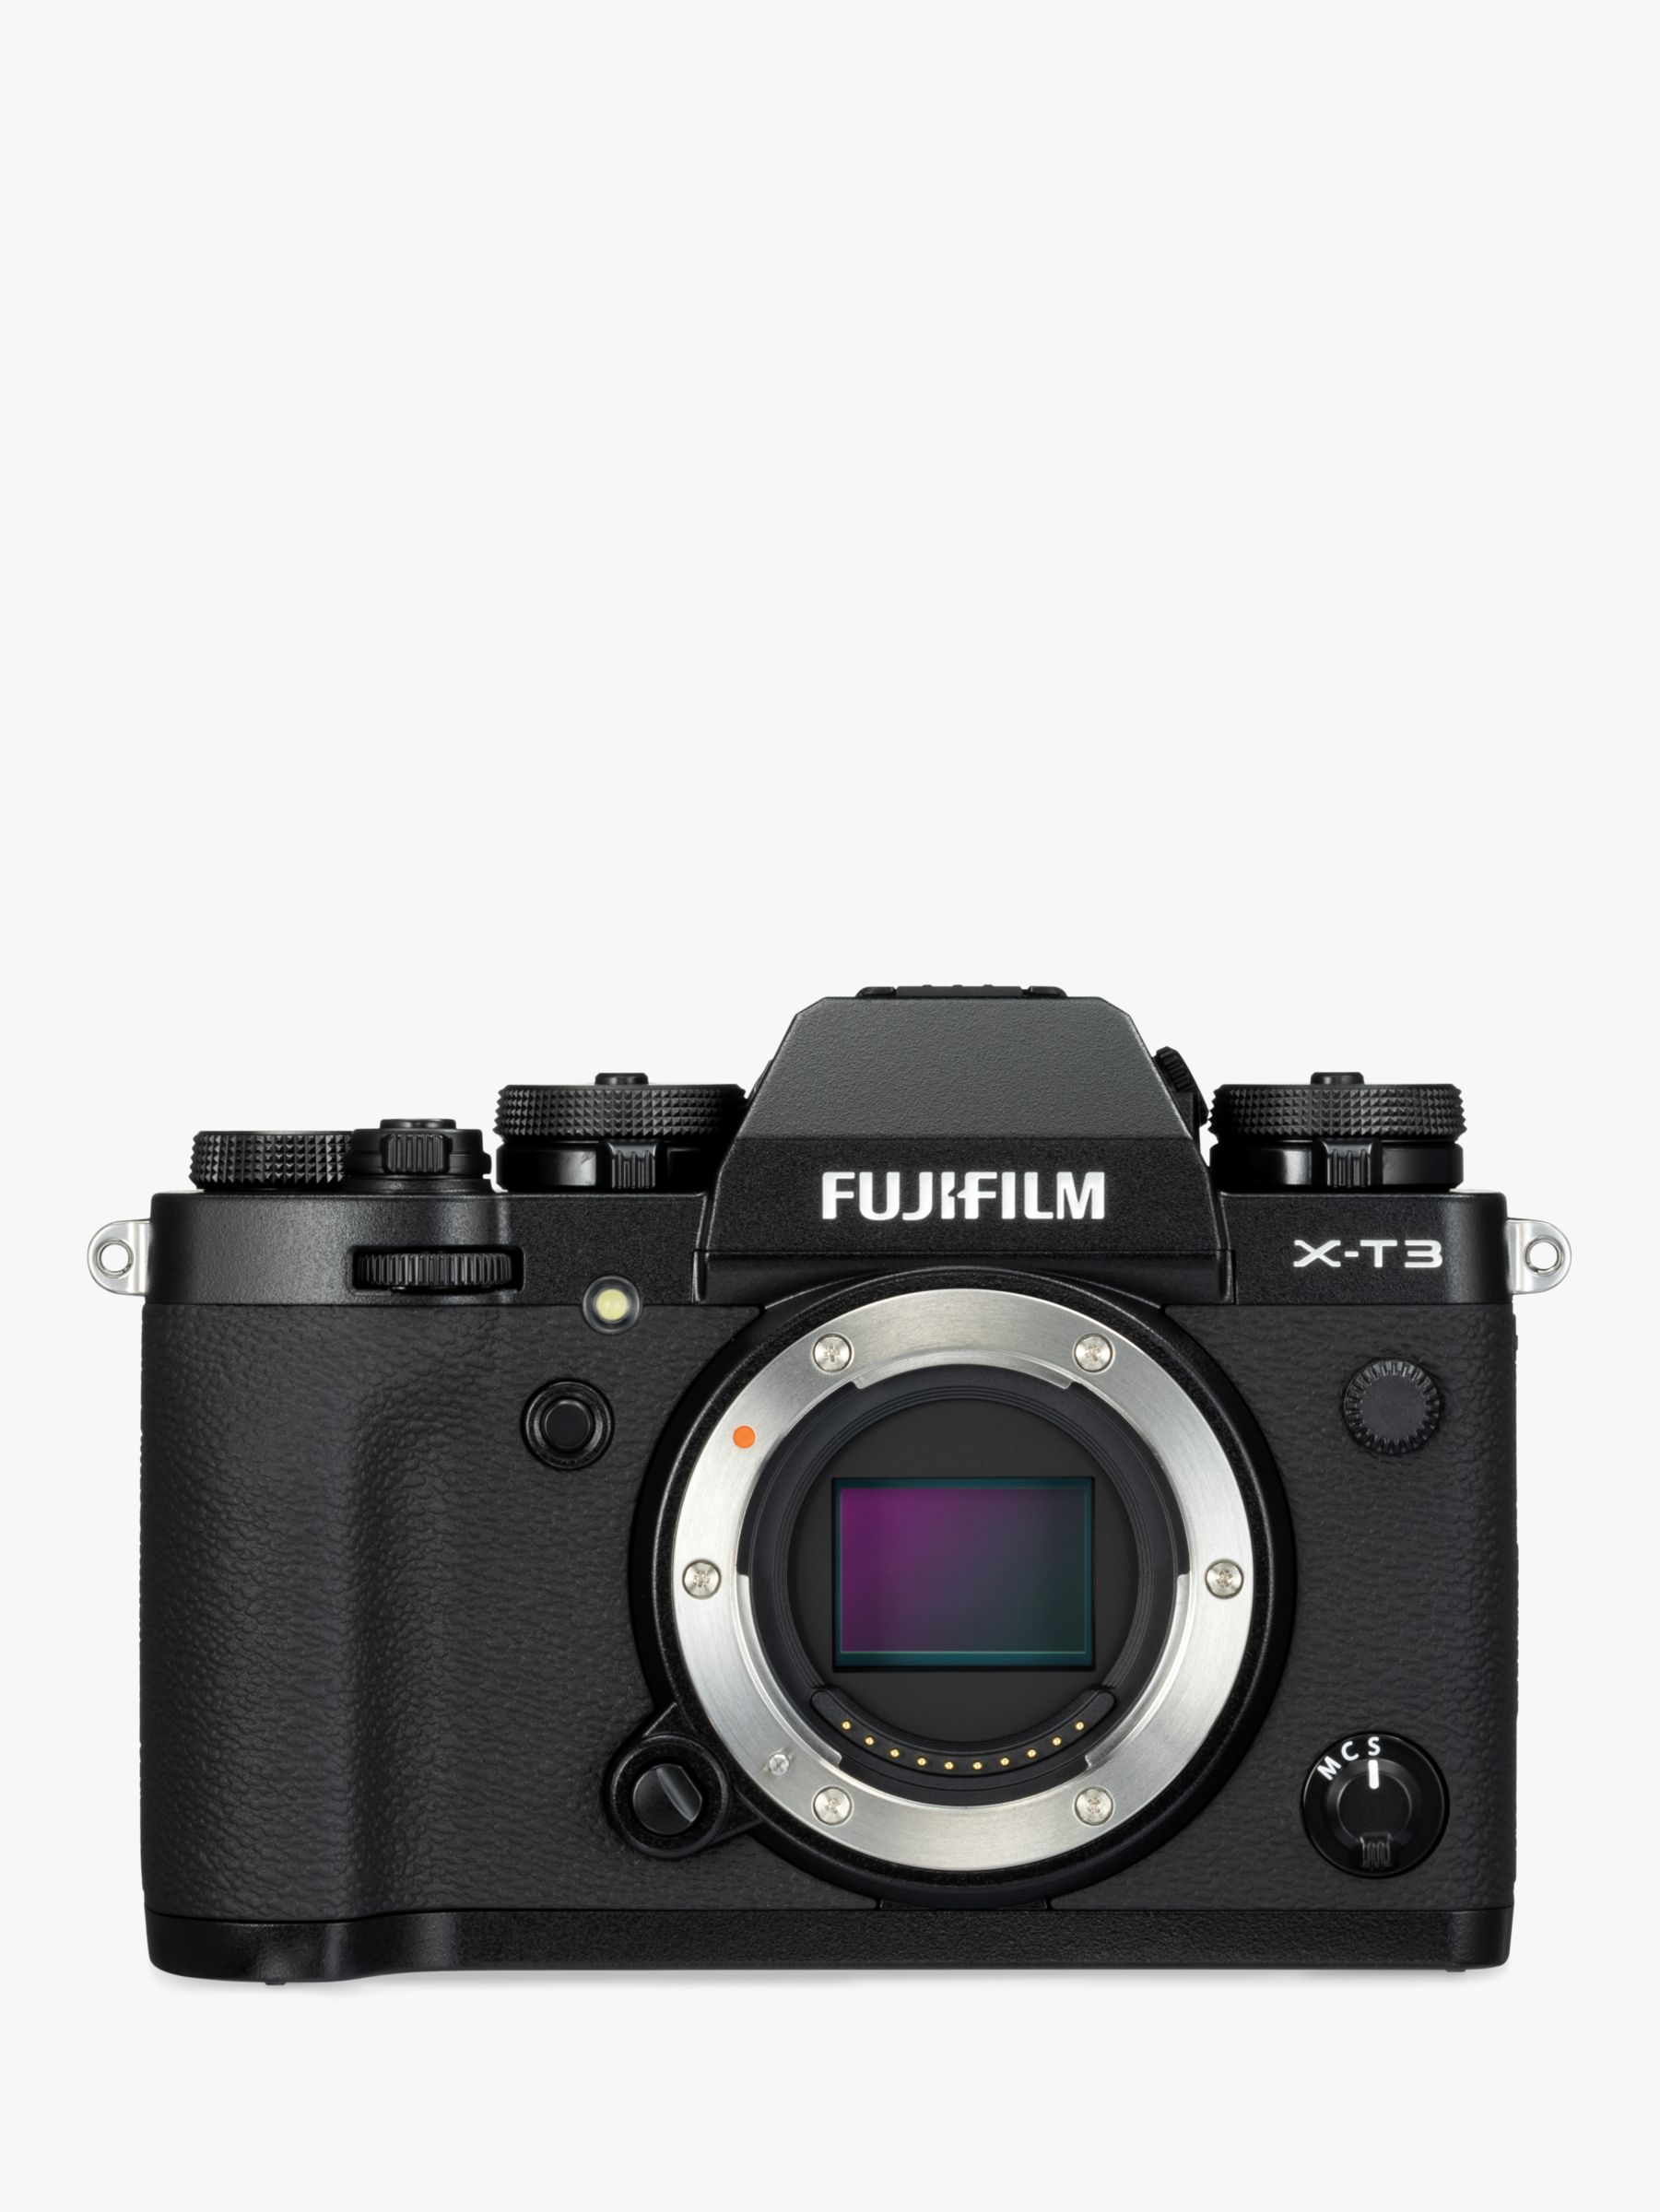 "Fujifilm Fujifilm X-T3 Compact System Camera, 4K Ultra HD, 26.1MP, Wi-Fi, OLED EVF, 3"" LCD Touch Screen, Body Only"